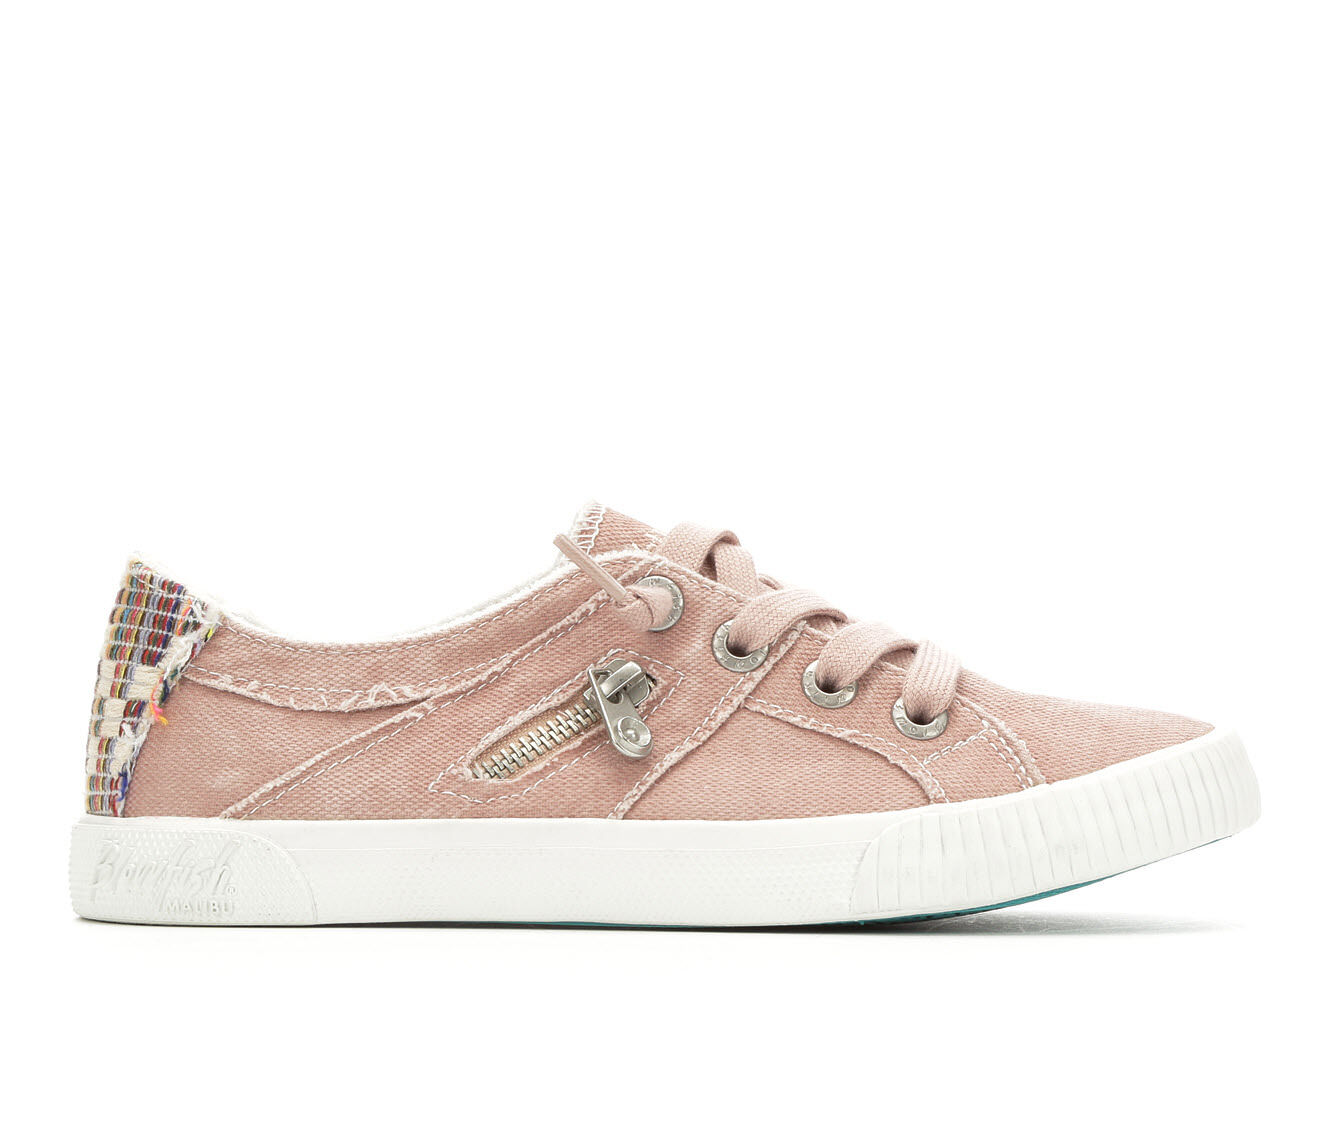 buy new arrivals Women's Blowfish Malibu Fruit Sneakers Dirty Pink